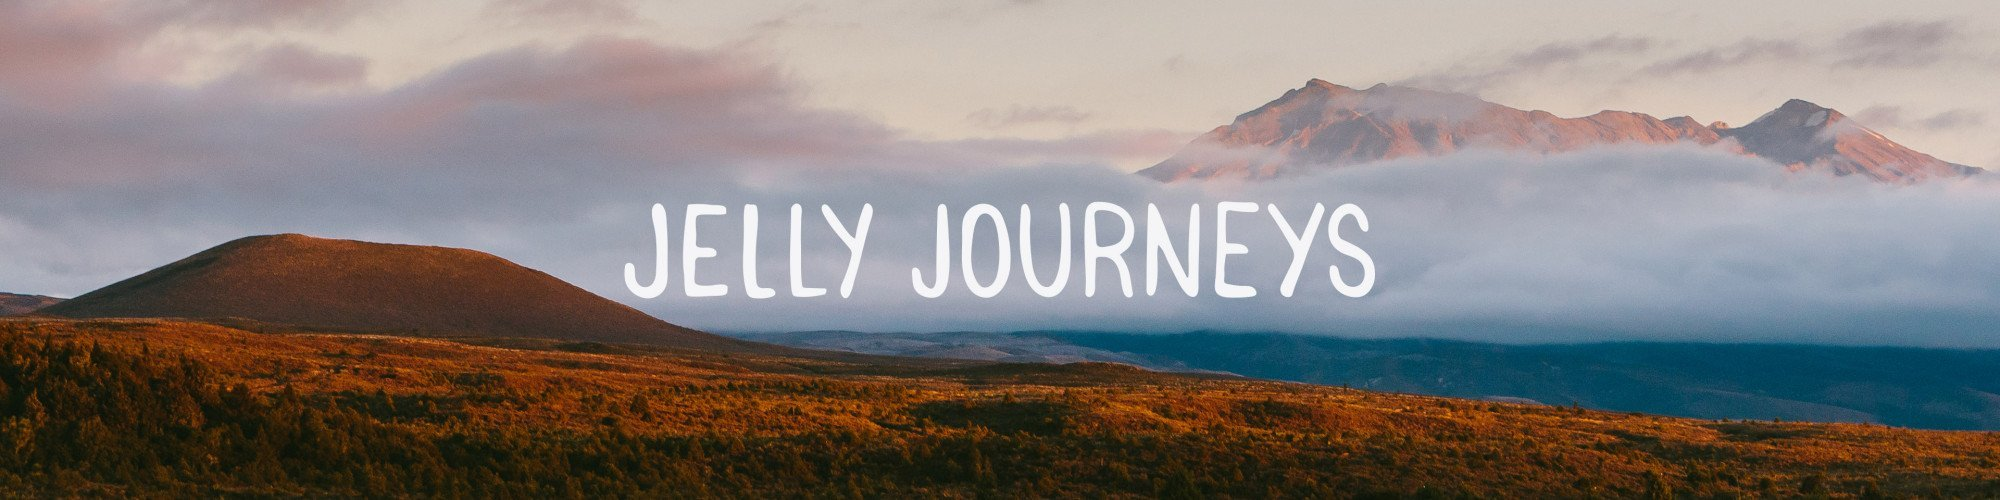 Jelly Journeys – Travel Adventure Blog